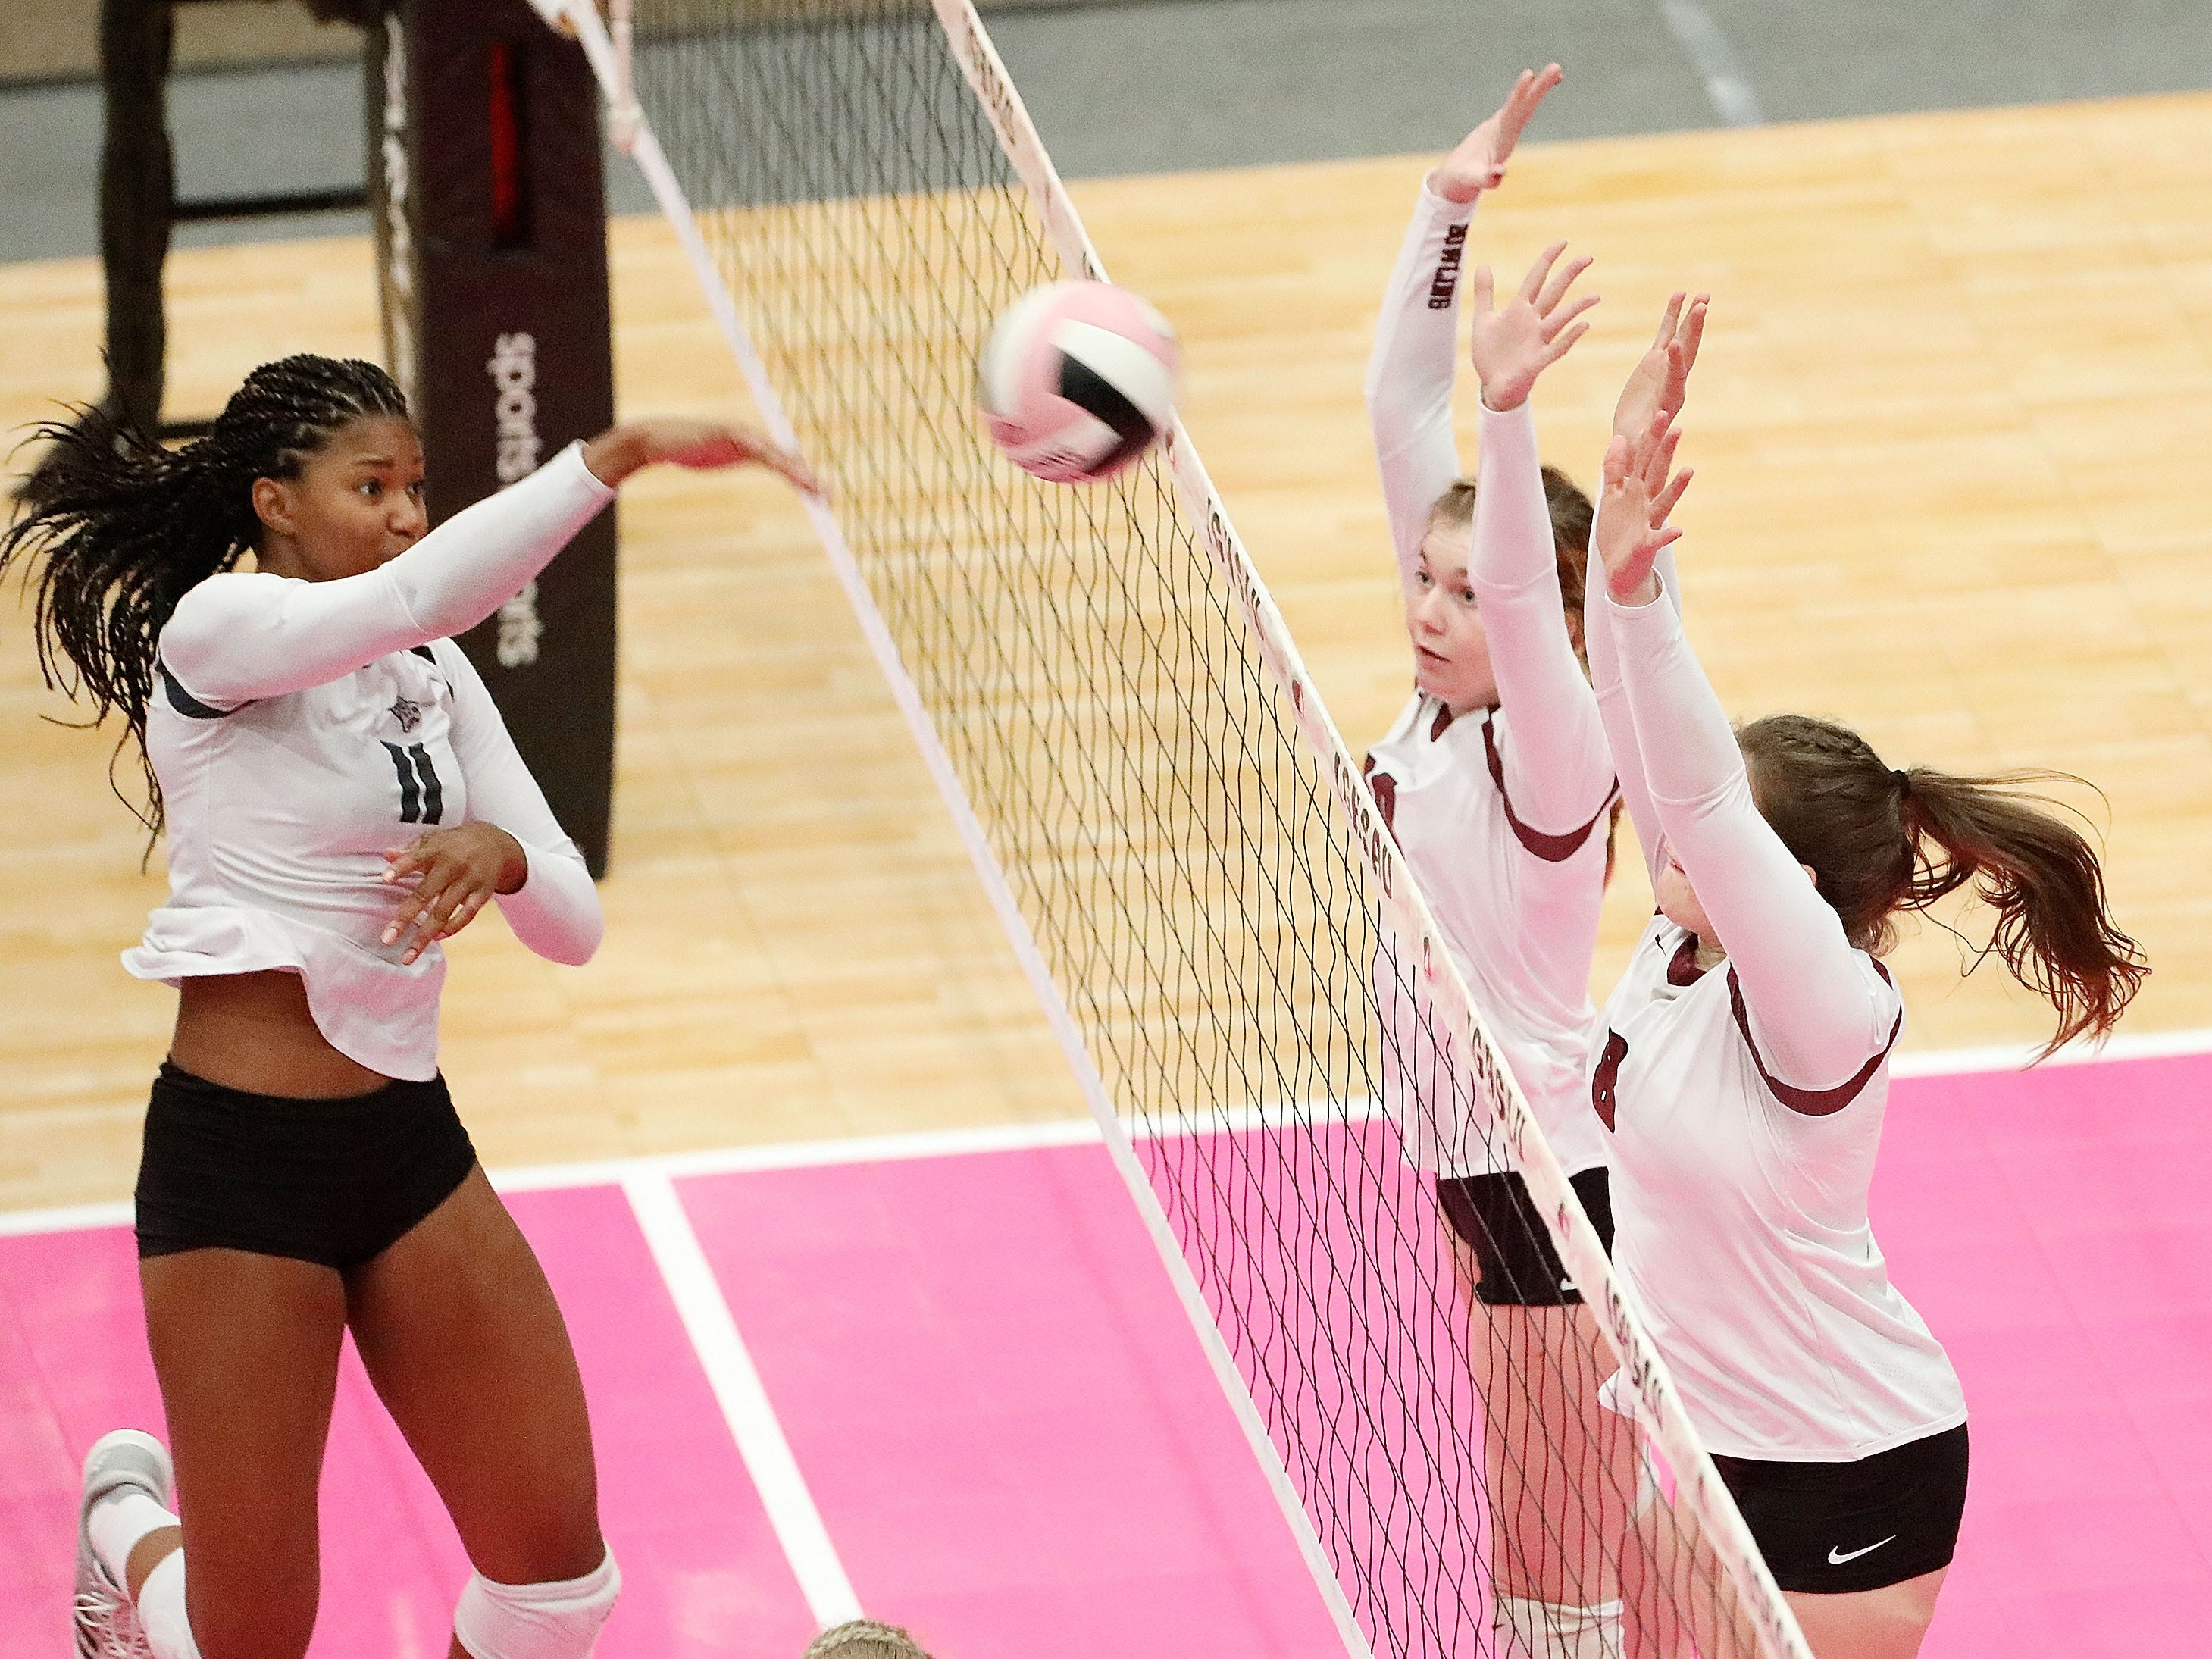 Ankeny Centennial's Devyn Robinson (11) hits the ball over the net as Dowling Catholic's Piper Kirchhoff (10) and Jacey Koethe (8) try to block during the quarterfinals of the 2018 Girls' High School State Volleyball Tournament at the US Cellular Center in Cedar Rapids on Tuesday, November 6, 2018. (Cliff Jette/The Gazette)